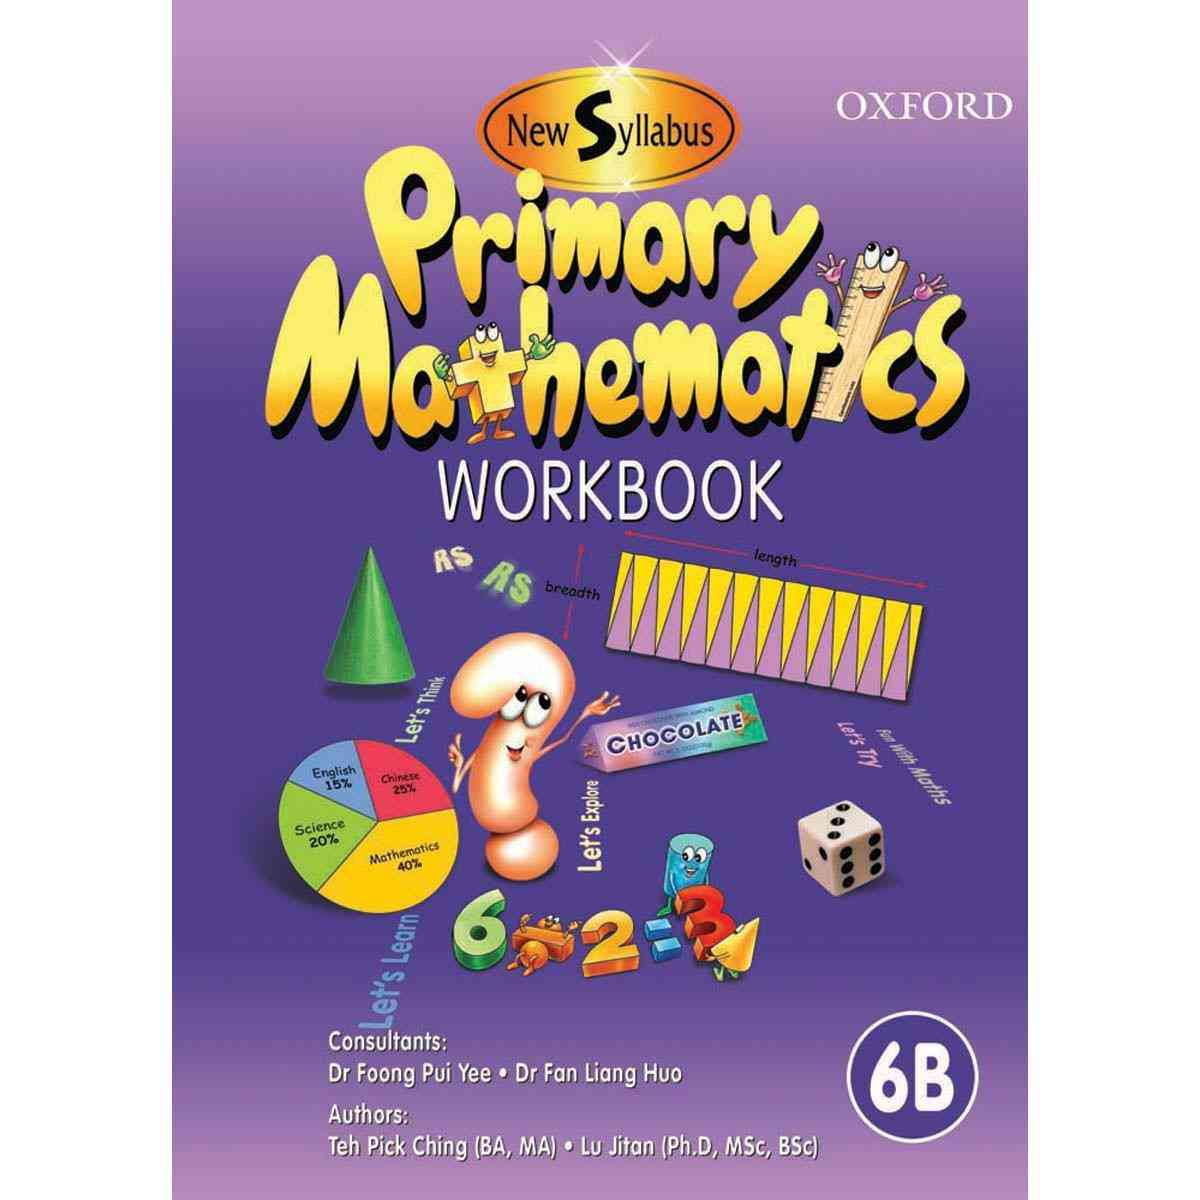 Oxford Books Syllabus Primary Mathematics Workbook 6B